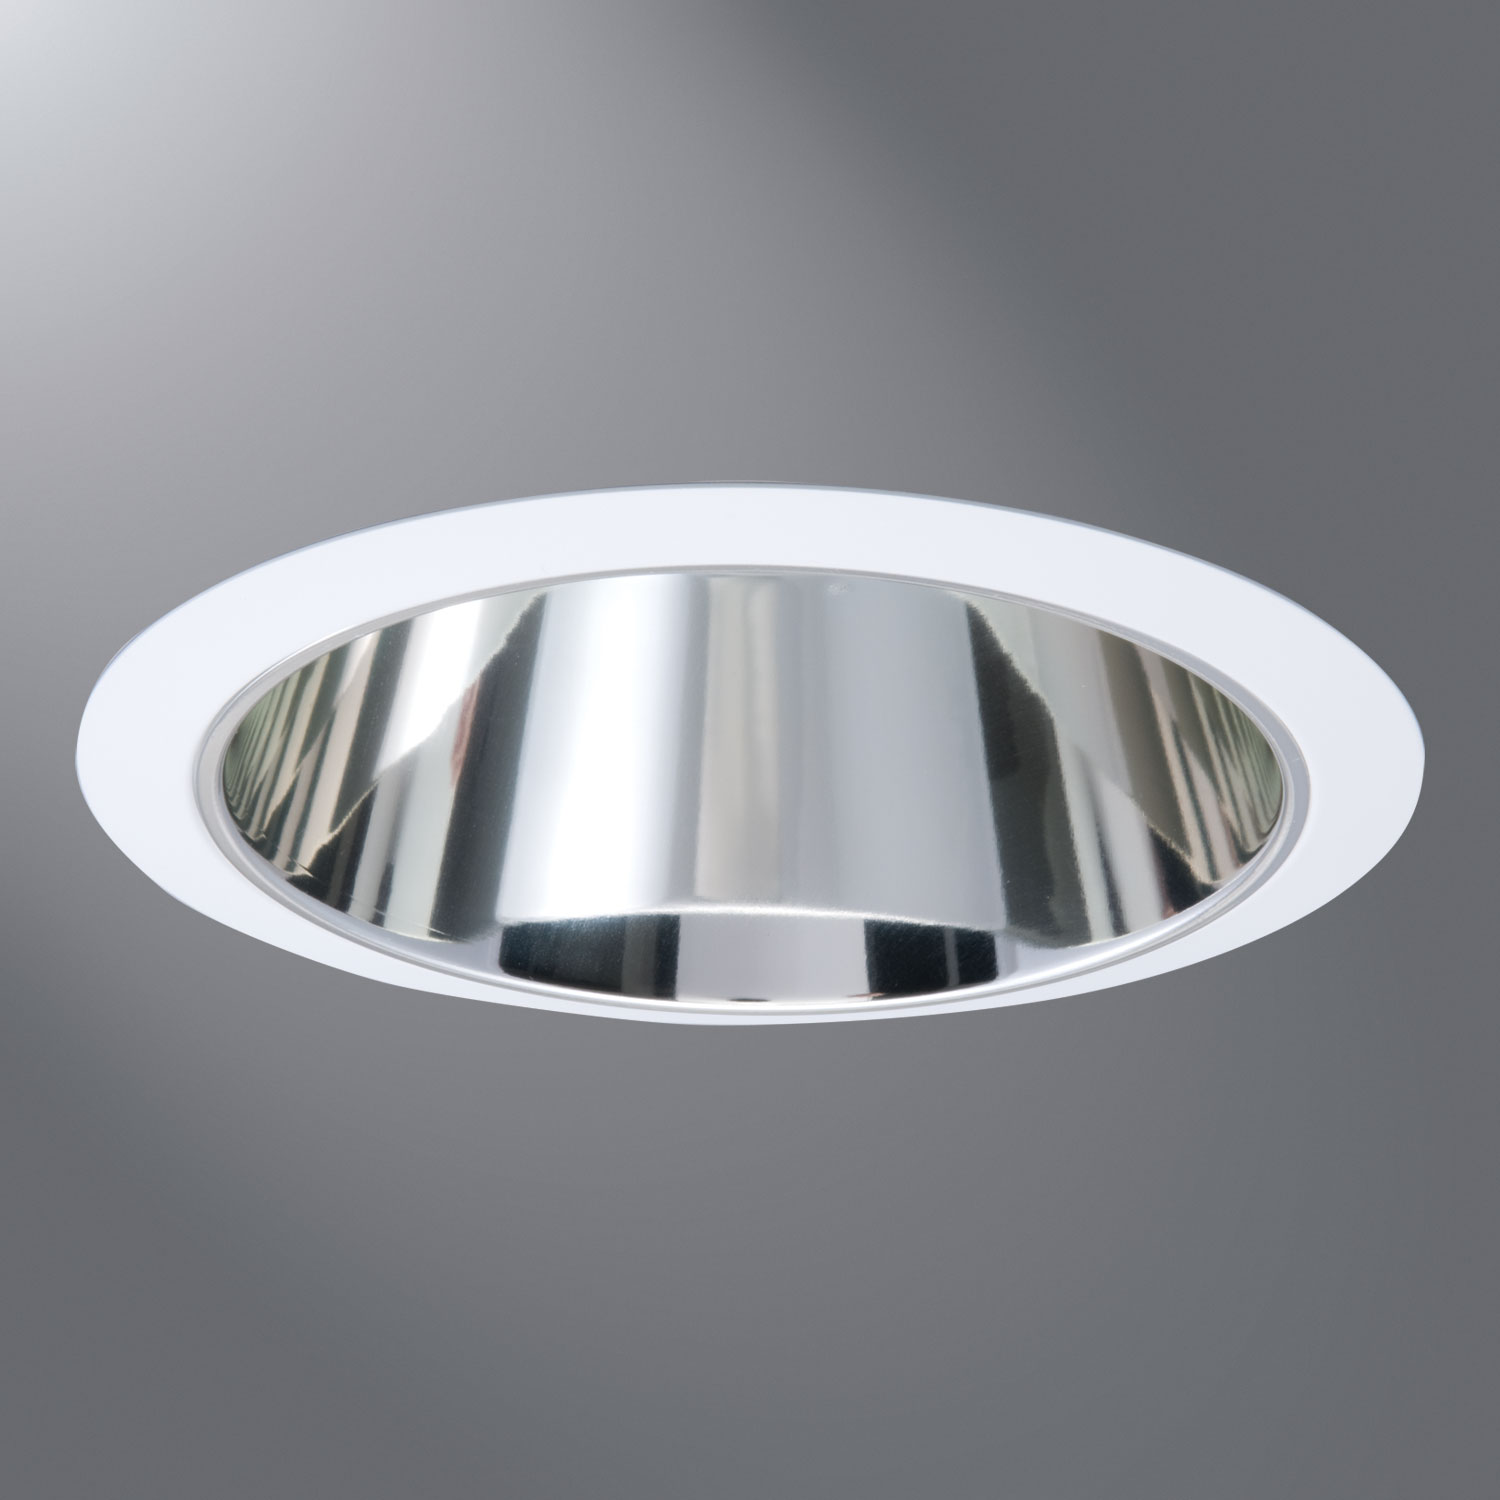 1421 4 Inch Reflector Downlight Trim By Halo 1421C